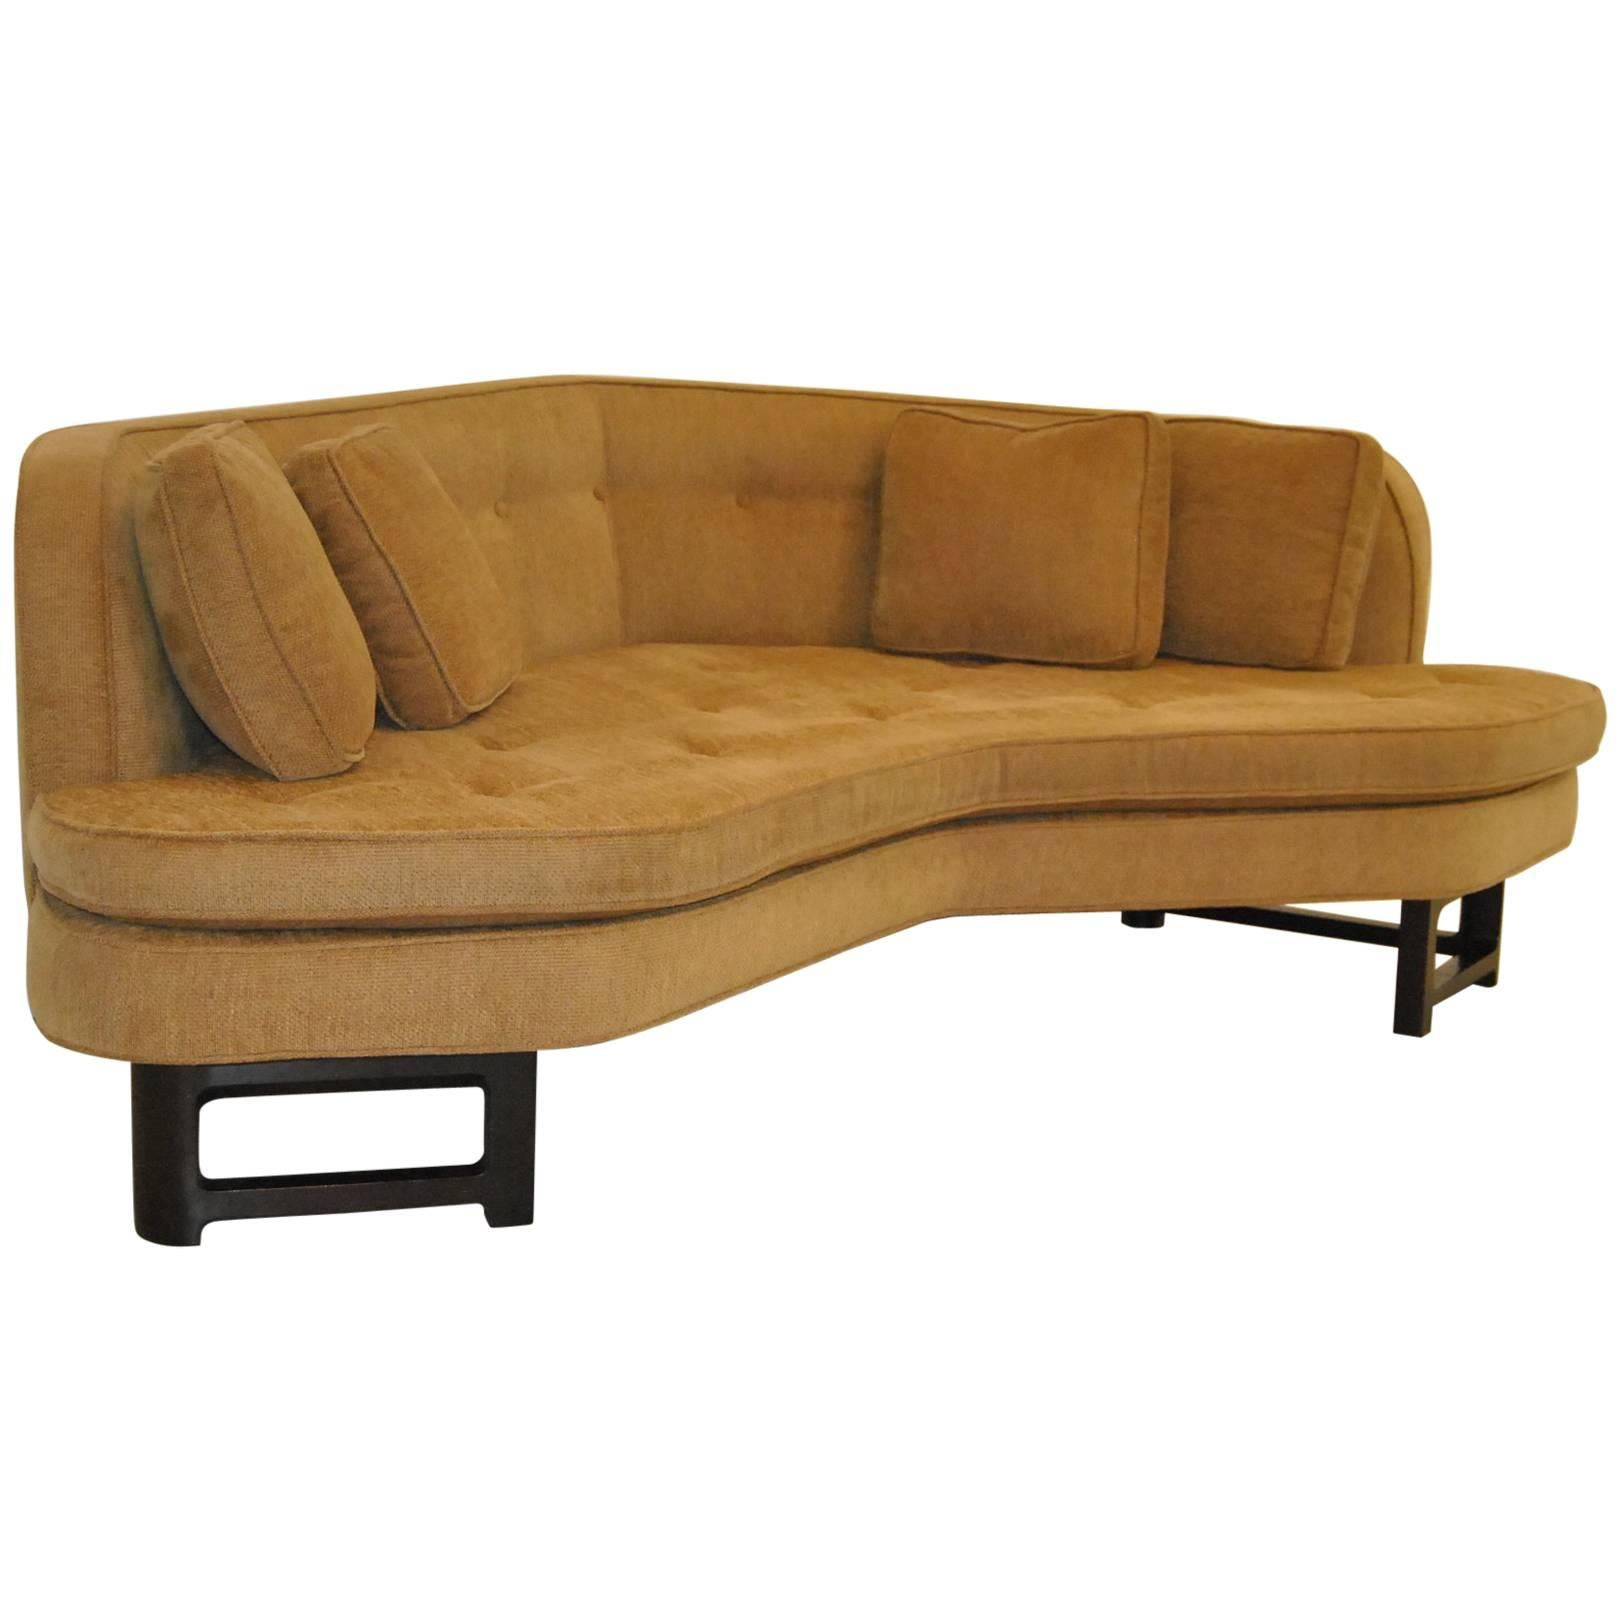 Mid century modern furniture Wood Midcentury Modern Sofa By Edward Wormley For Dunbar Furniture Janus Collection For Sale 1stdibs Midcentury Modern Sofa By Edward Wormley For Dunbar Furniture Janus